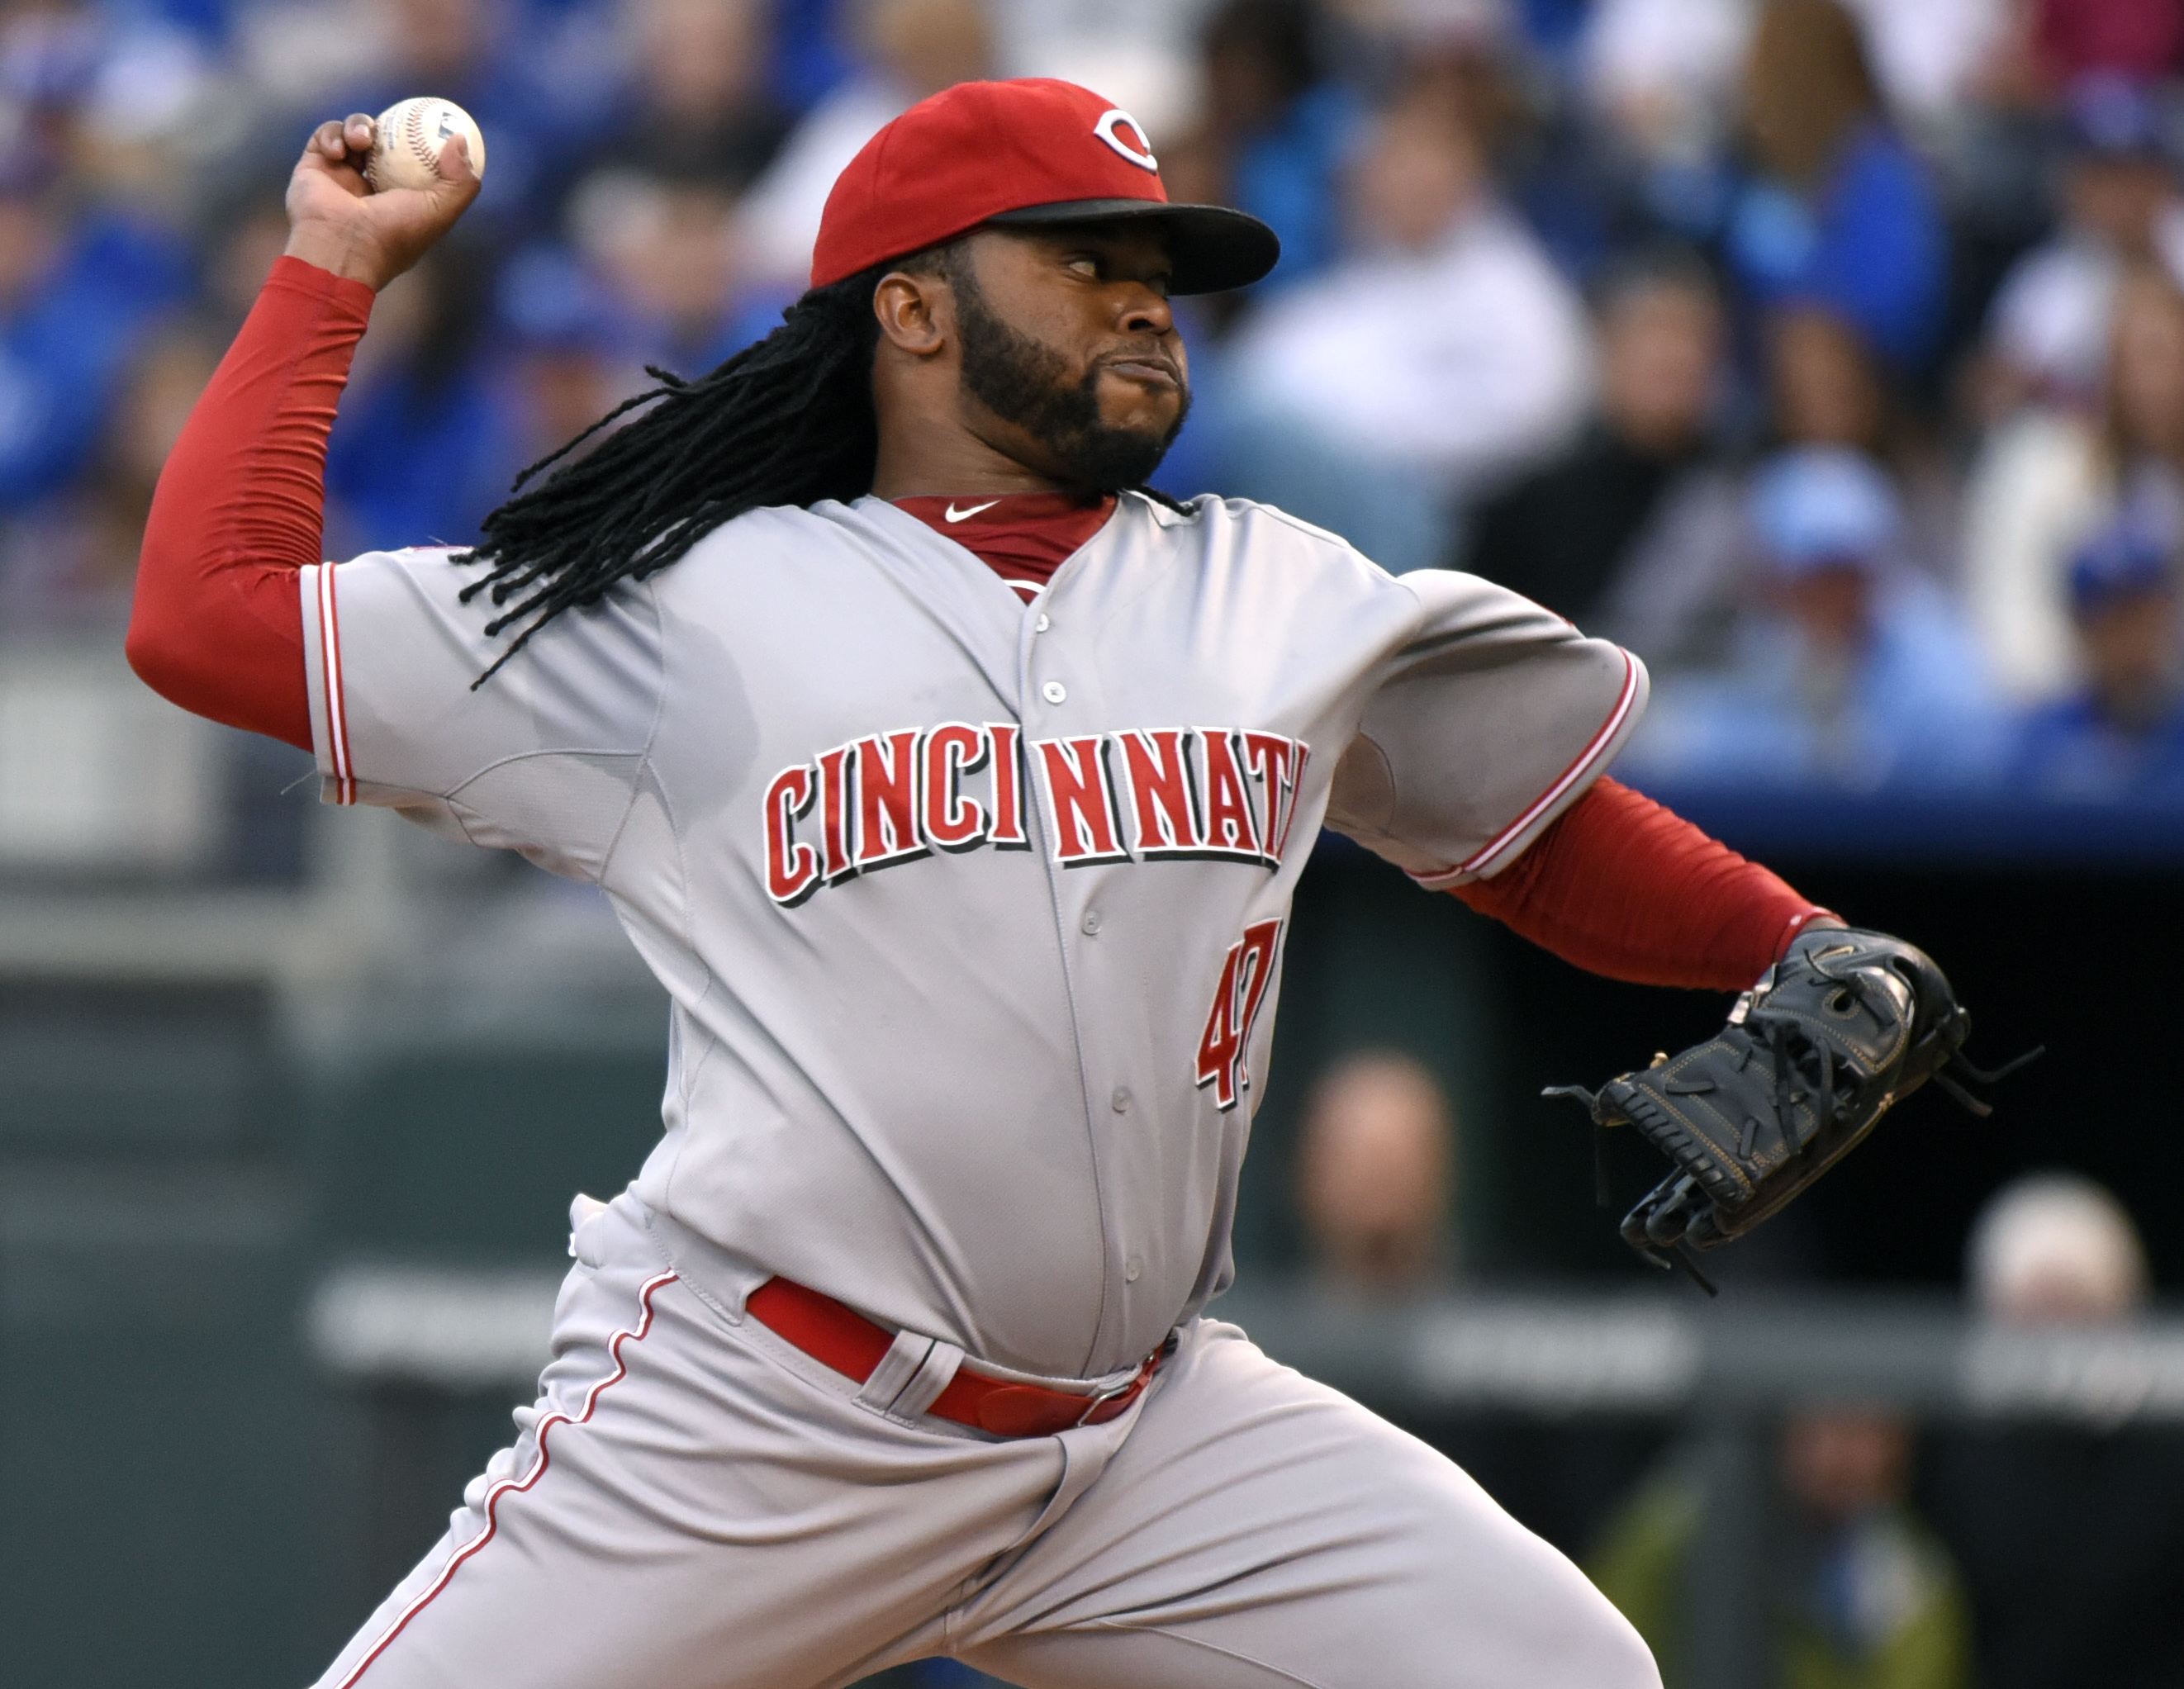 Cincinnati Reds starting pitcher Johnny Cueto throws in the first inning during an interleague baseball game against the Kansas City Royals Tuesday, May 19, 2015, in Kansas City, Mo. (AP Photo/Ed Zurga)